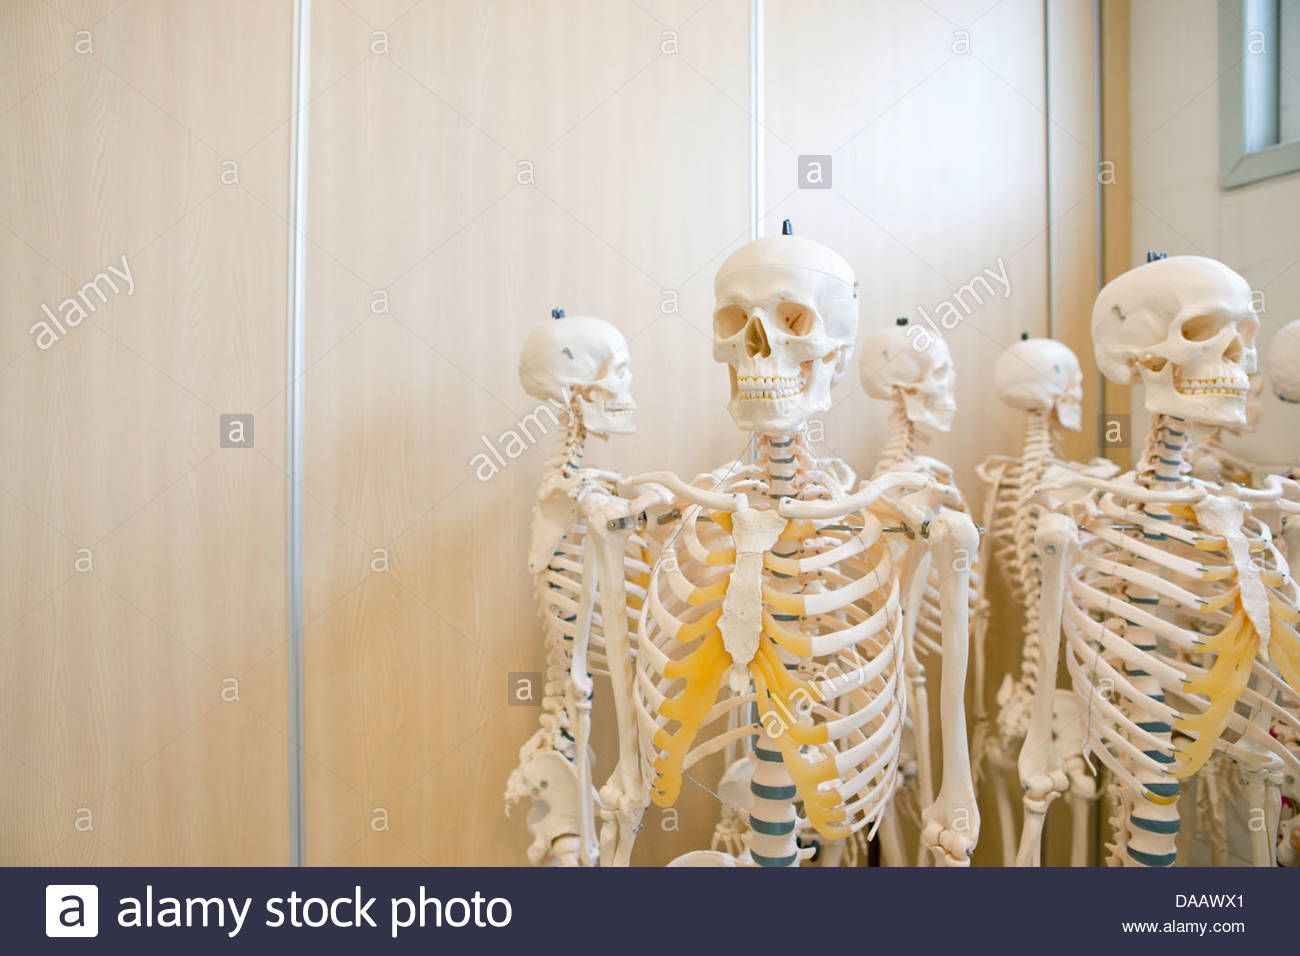 Skeleton models - Stock Image